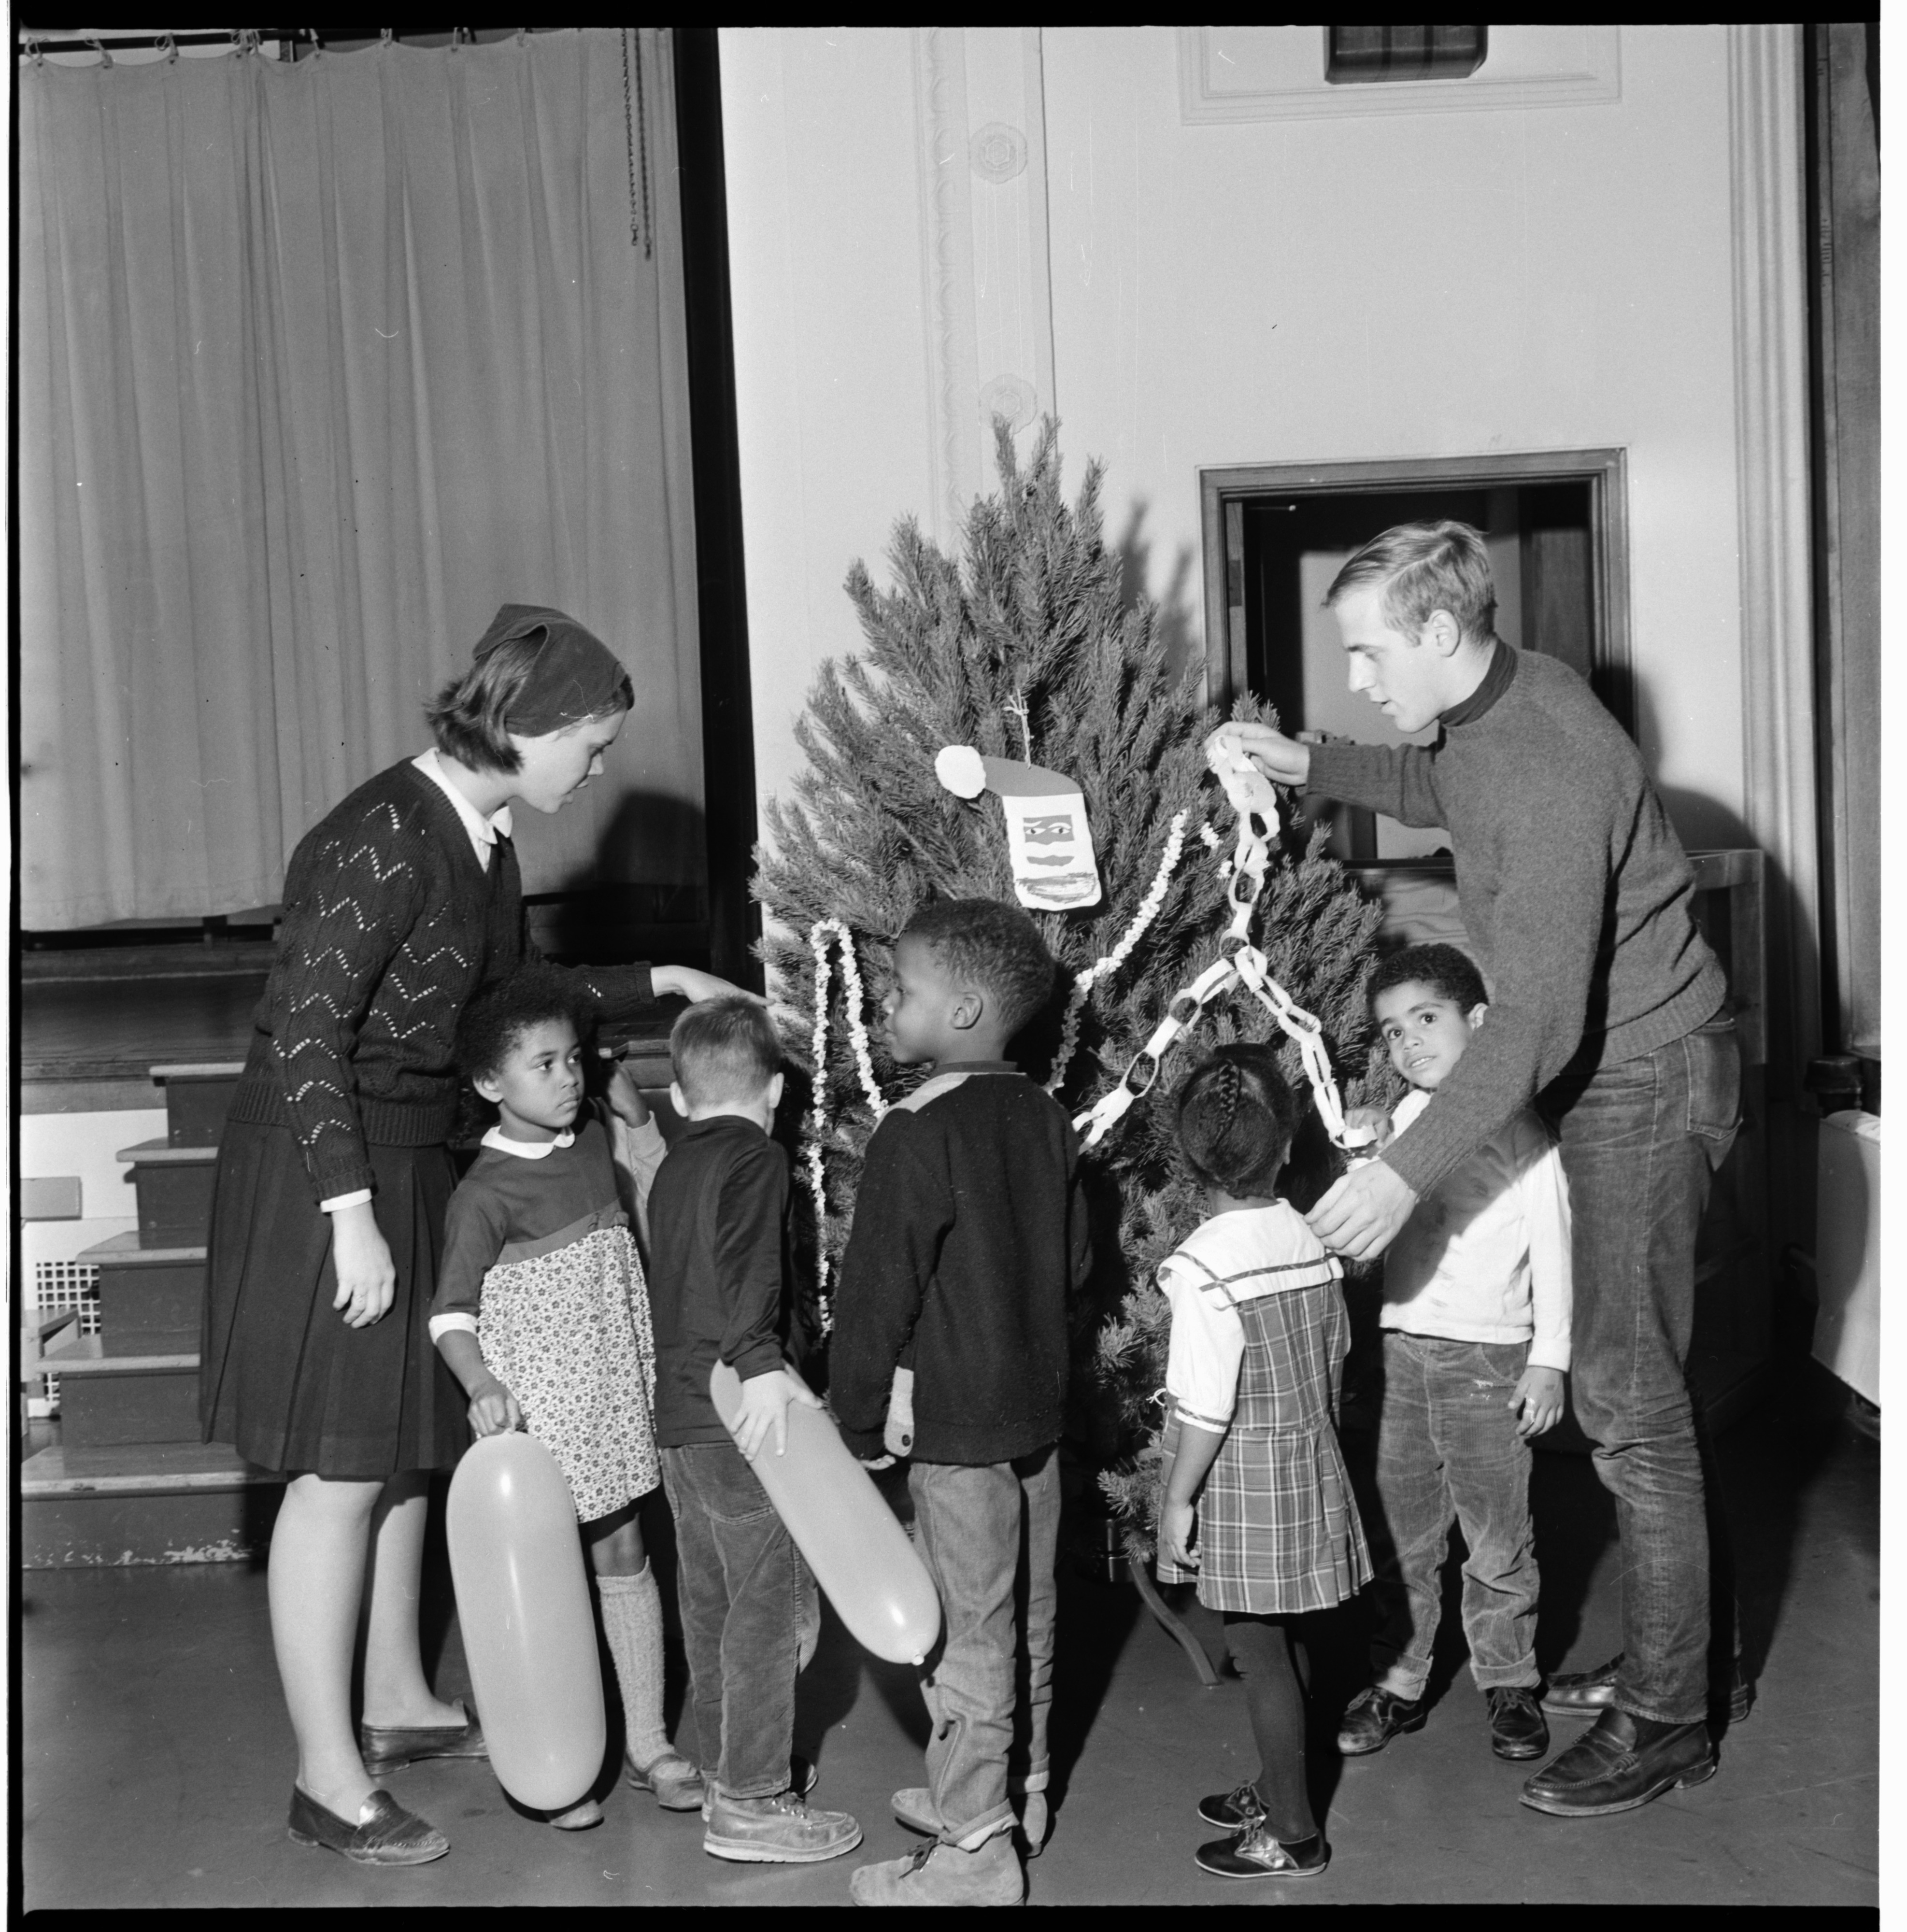 Headstart Program Hosts Christmas Party at Jones School, December 1966 image